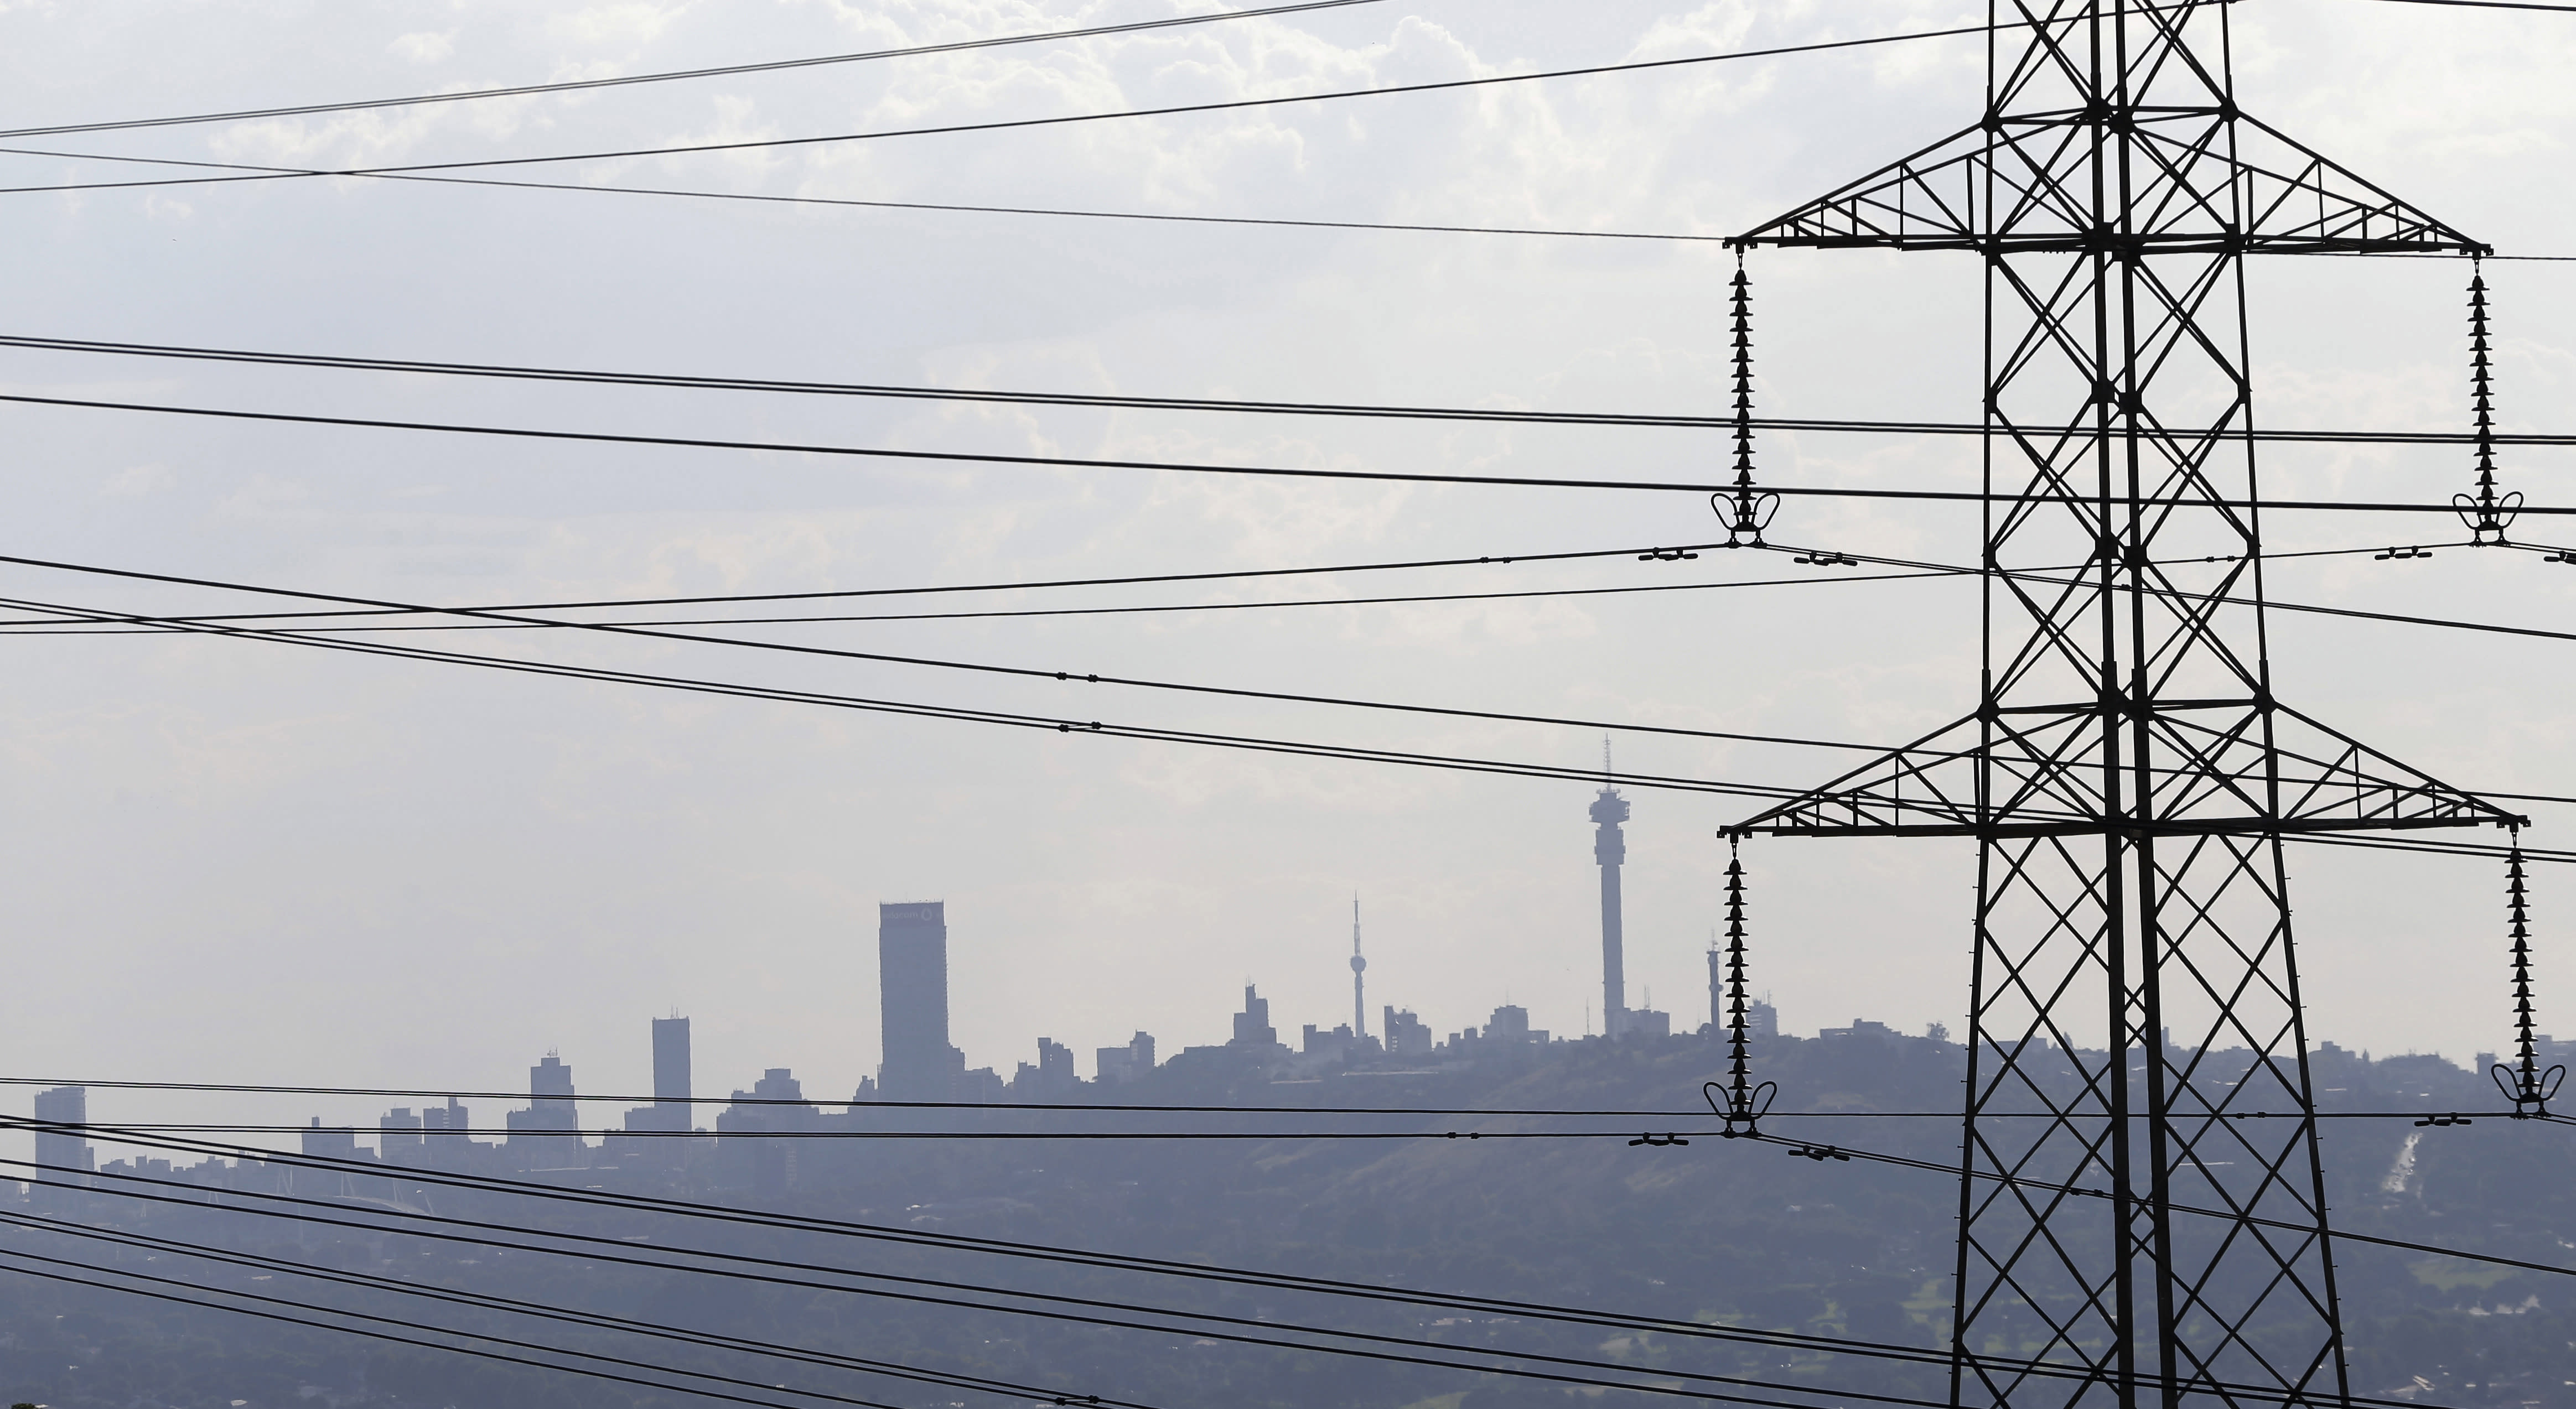 About 1,000 workers fired from South African power plant